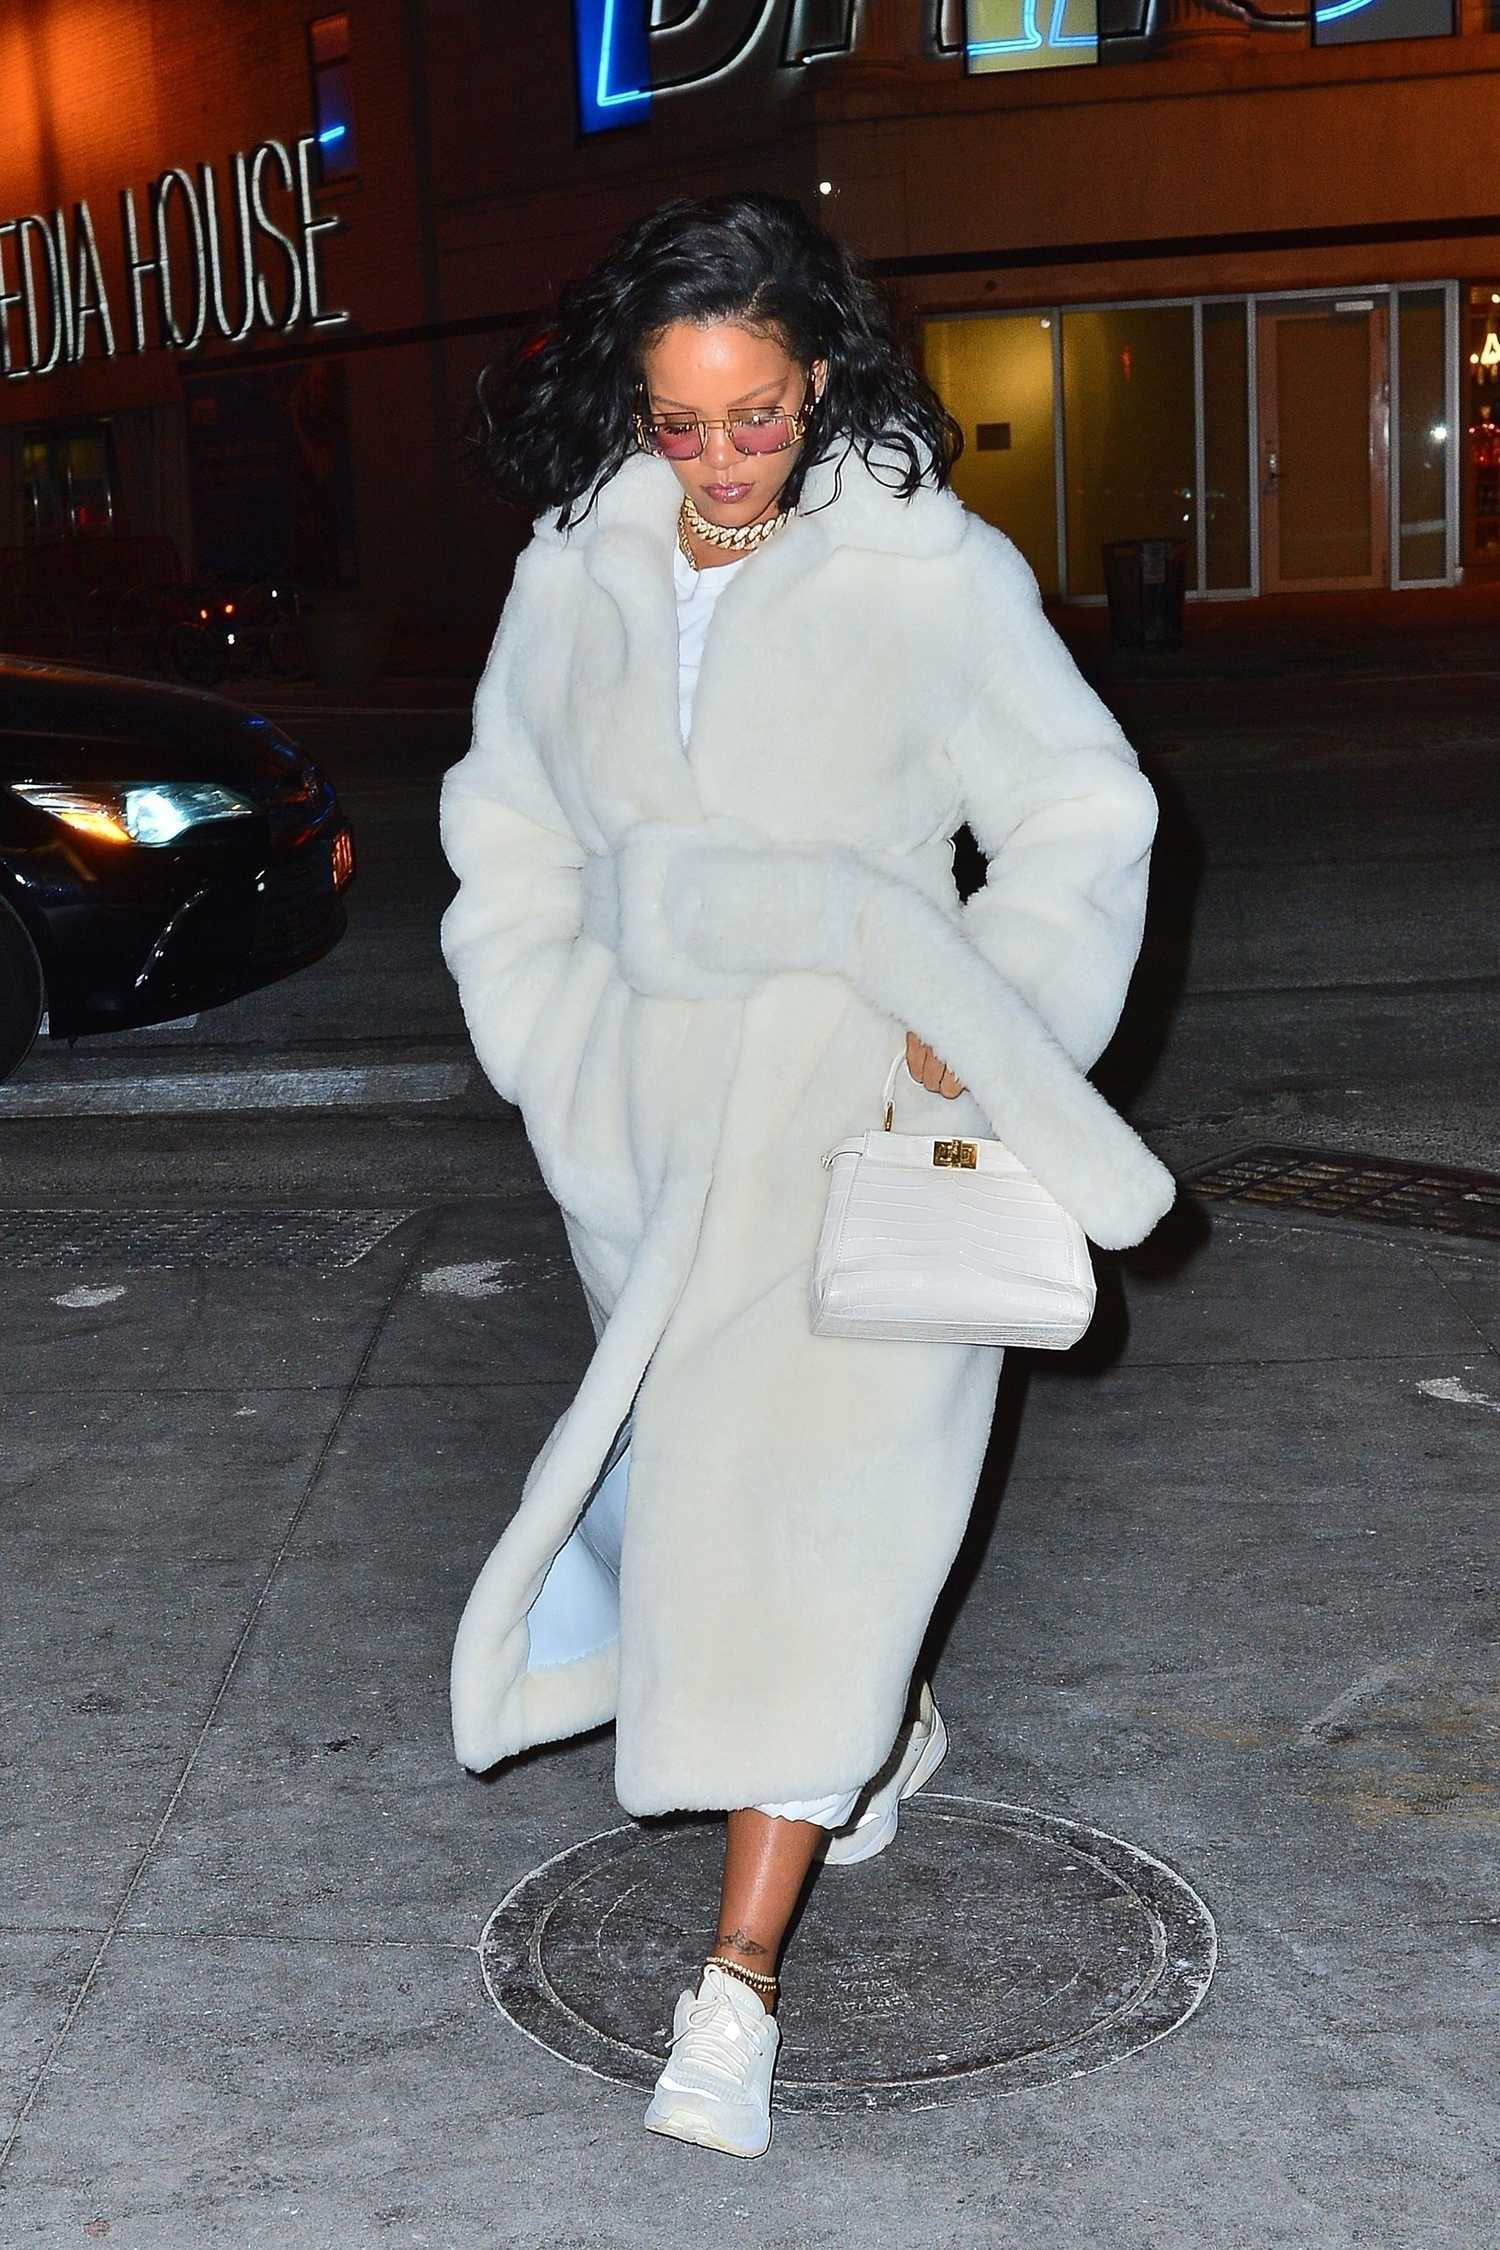 Rihanna In A White Fur Coat Out For Dinner In New York